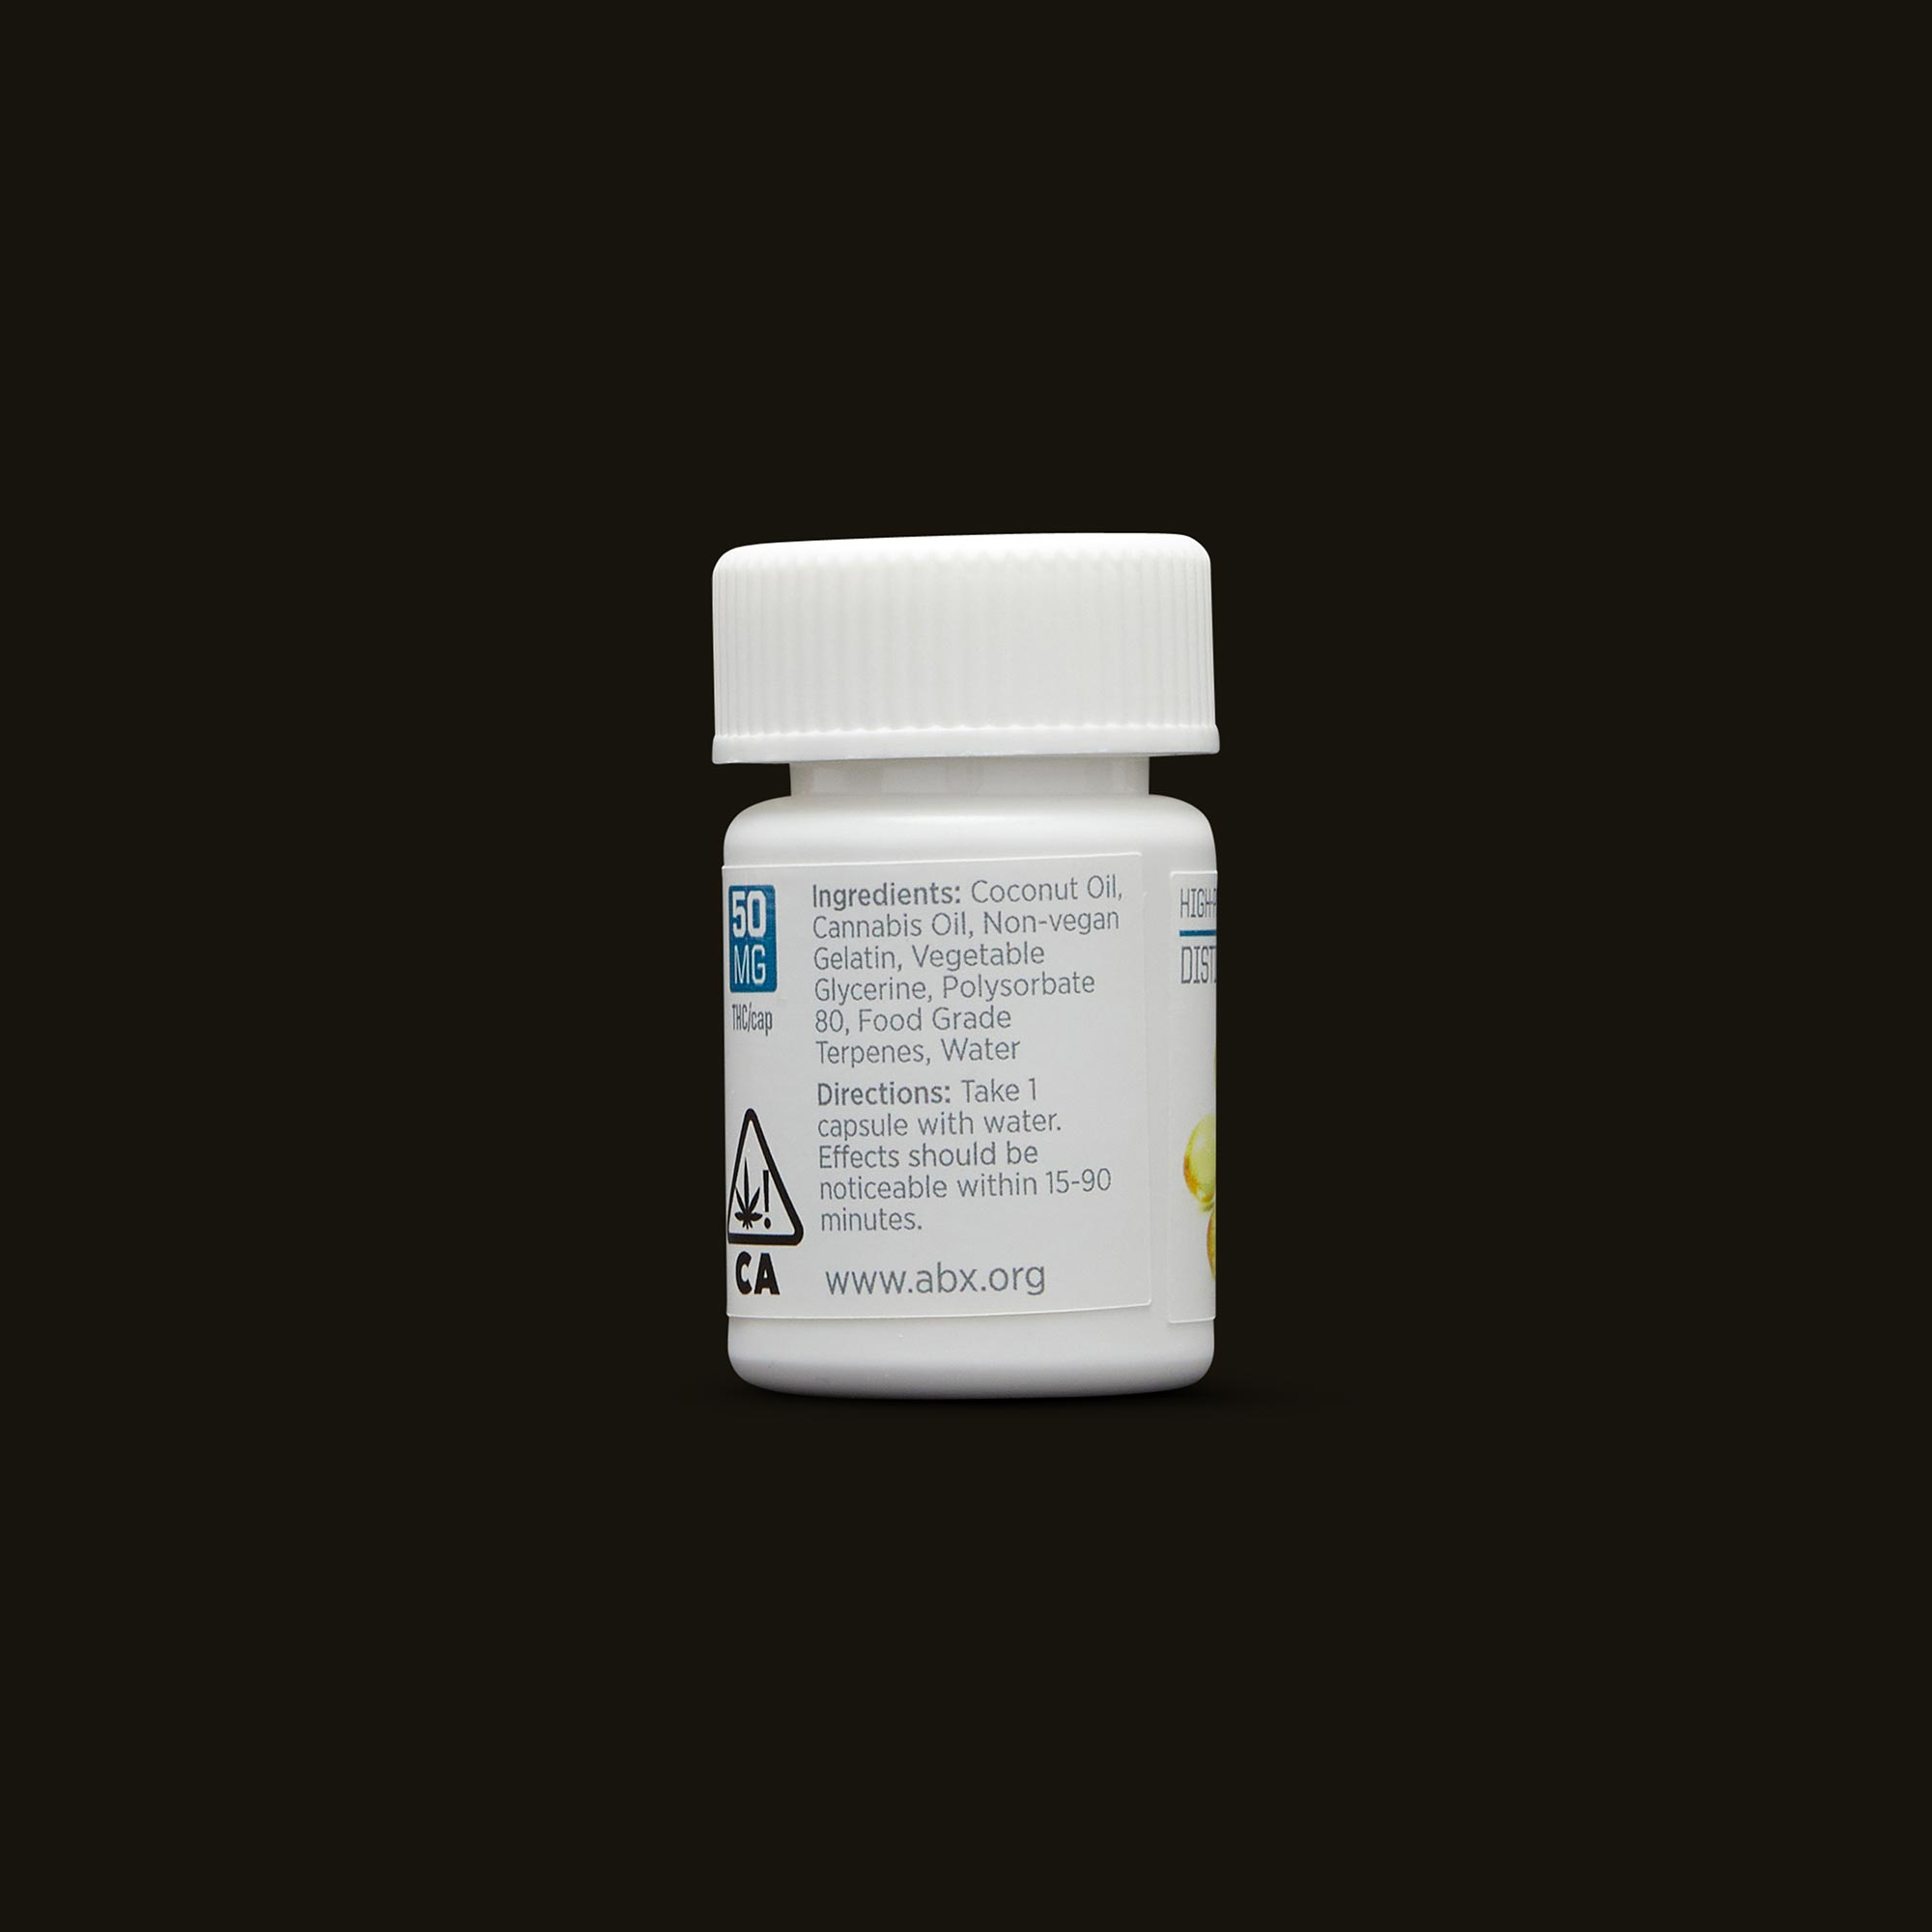 Absolute Extracts 50mg SoftGel ingredients